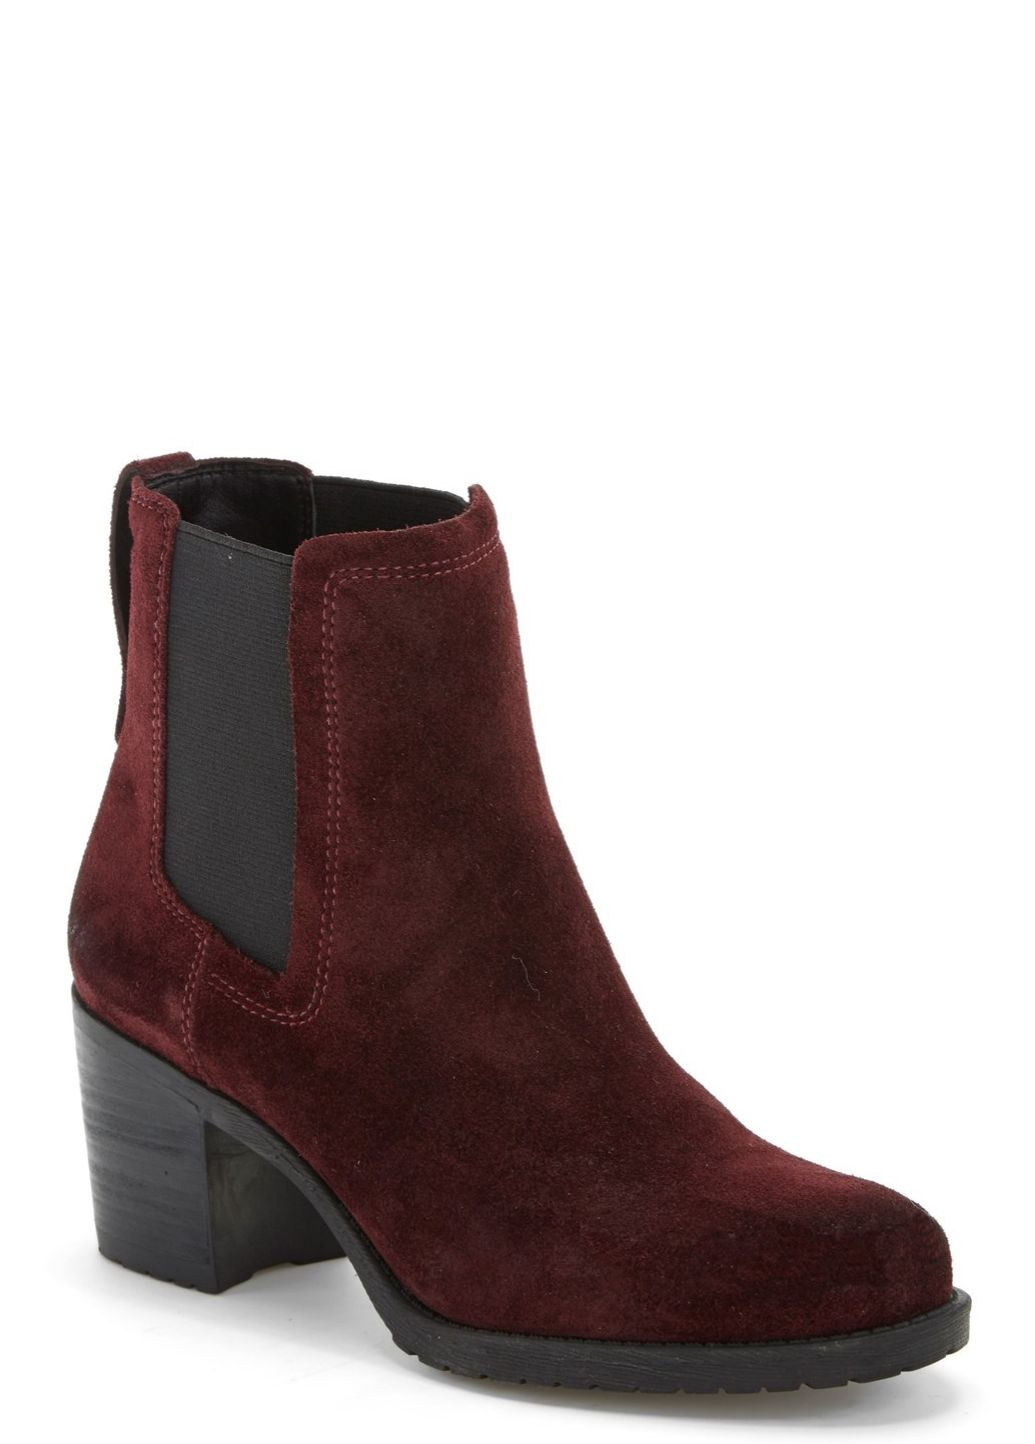 These burgundy suede Chelsea boots are sure to be denim's best friend this autumn.